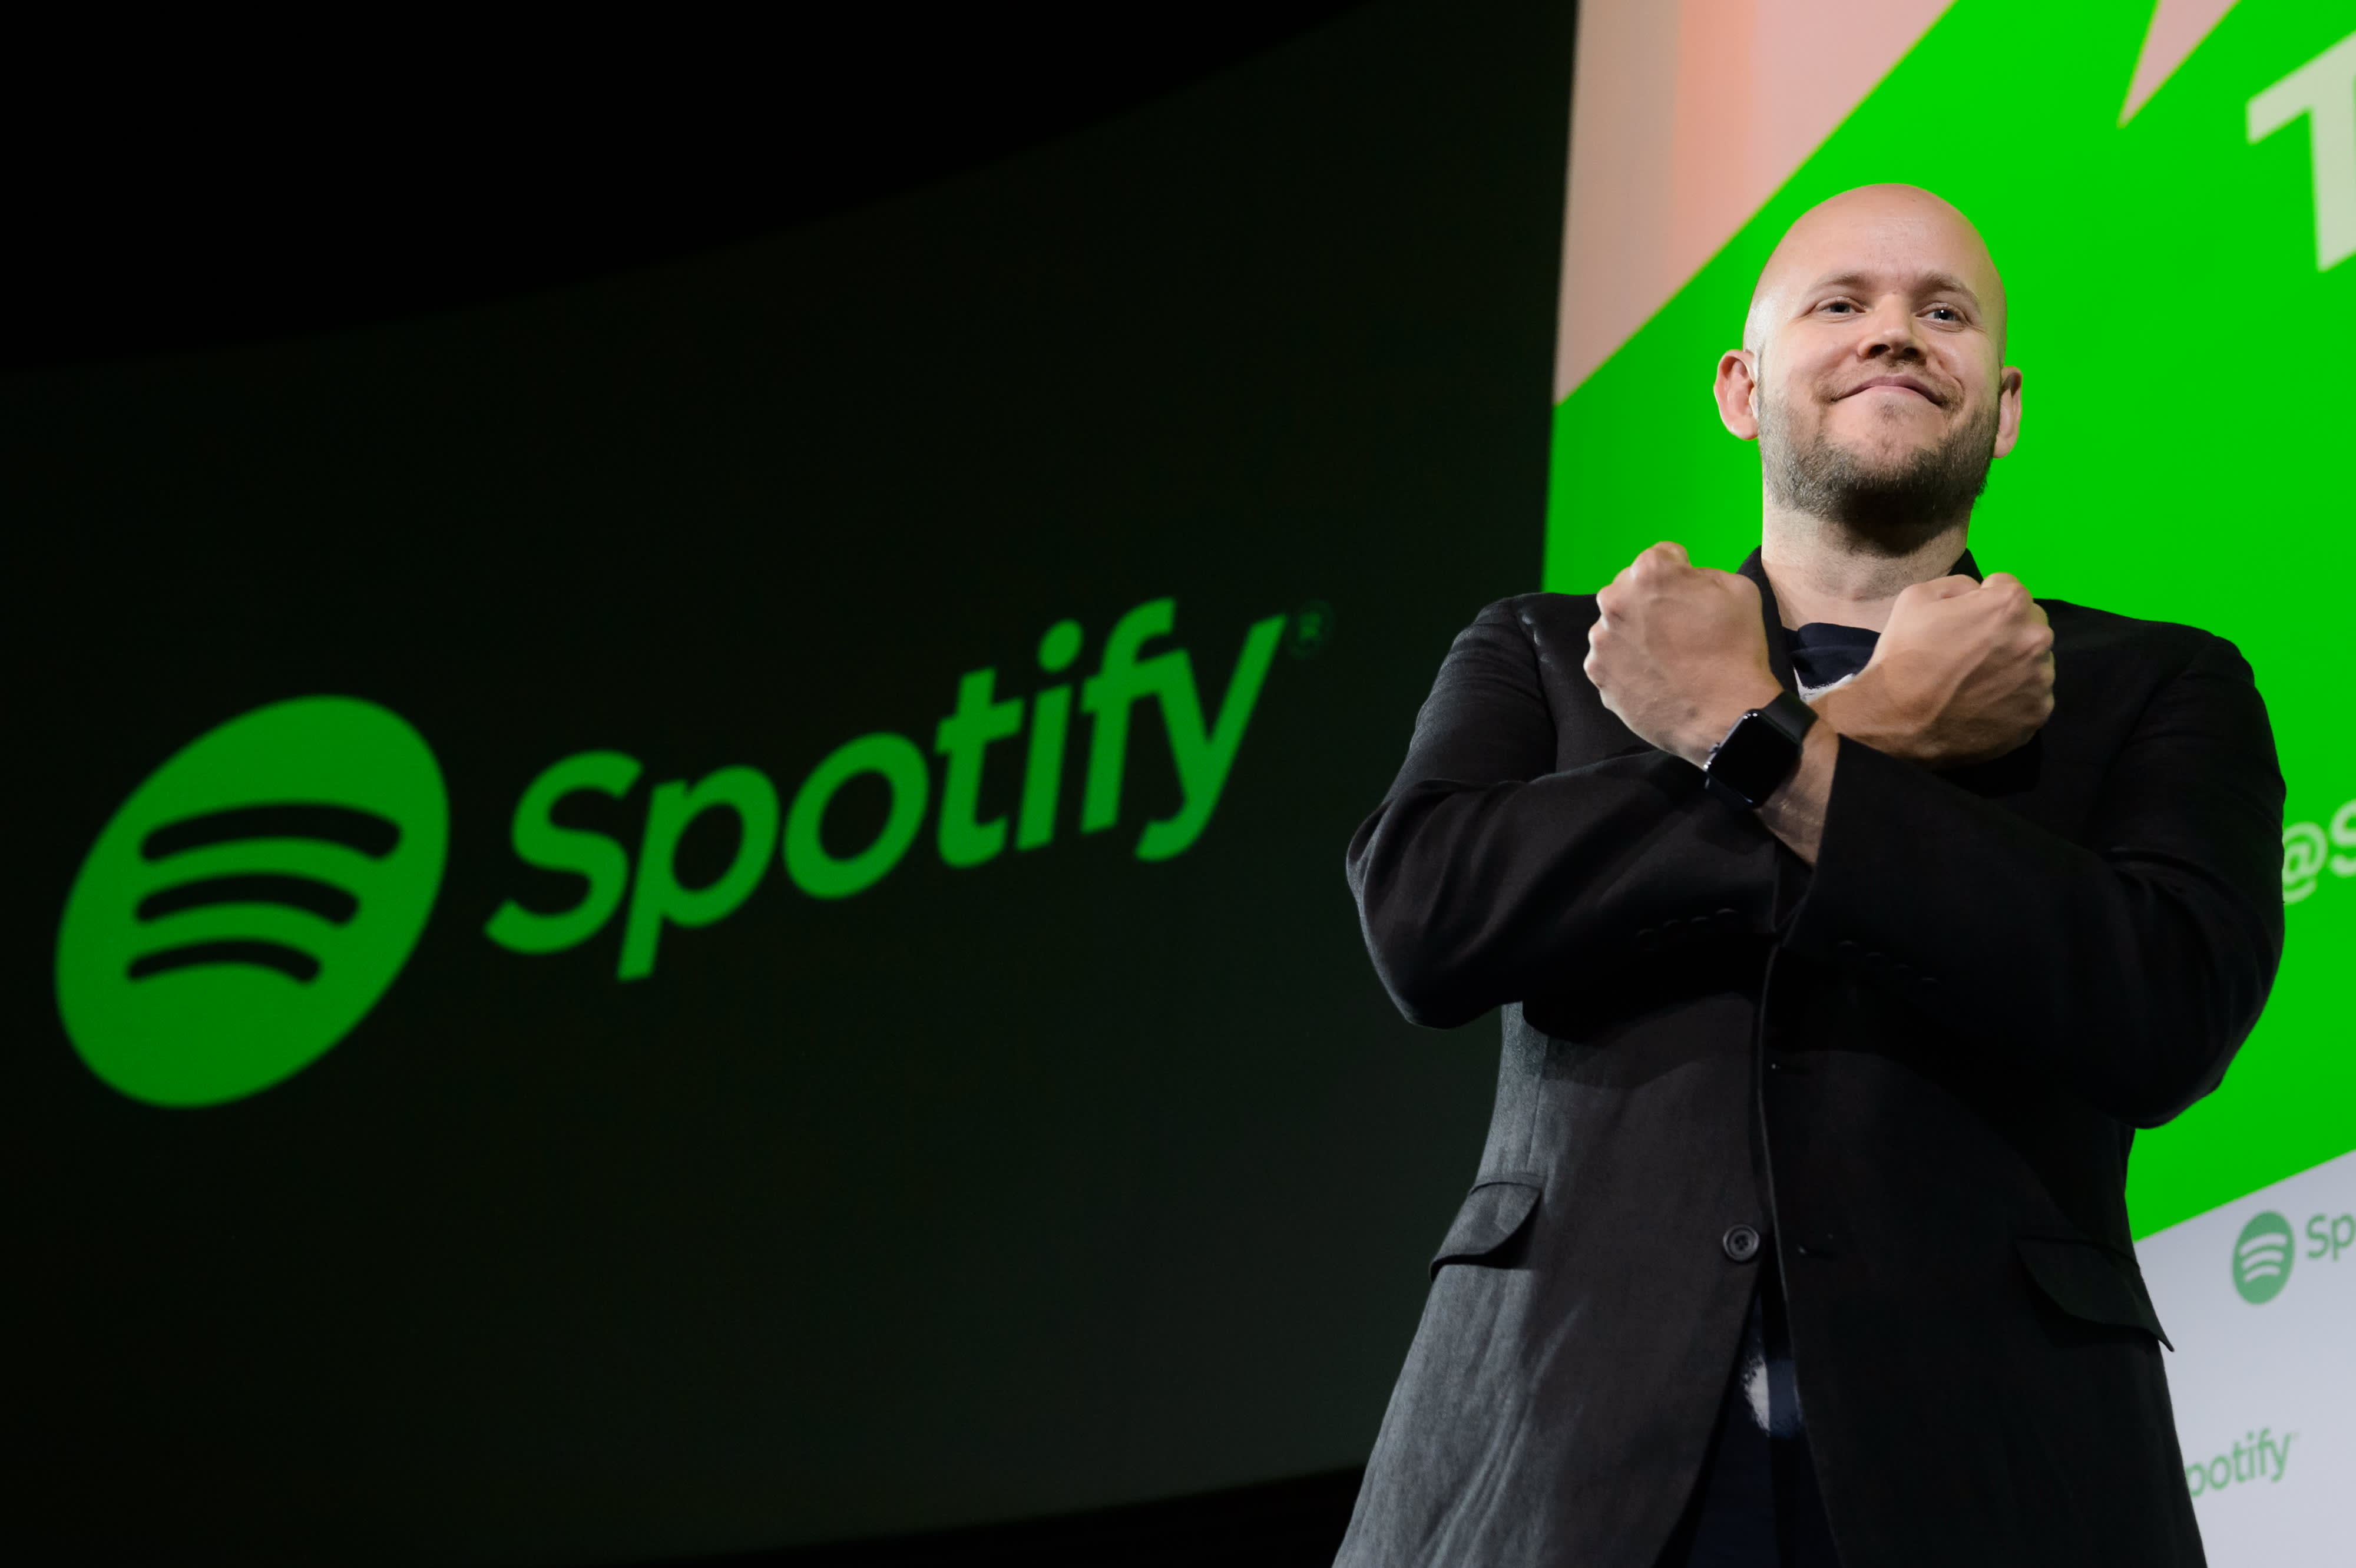 Spotify had an ipo